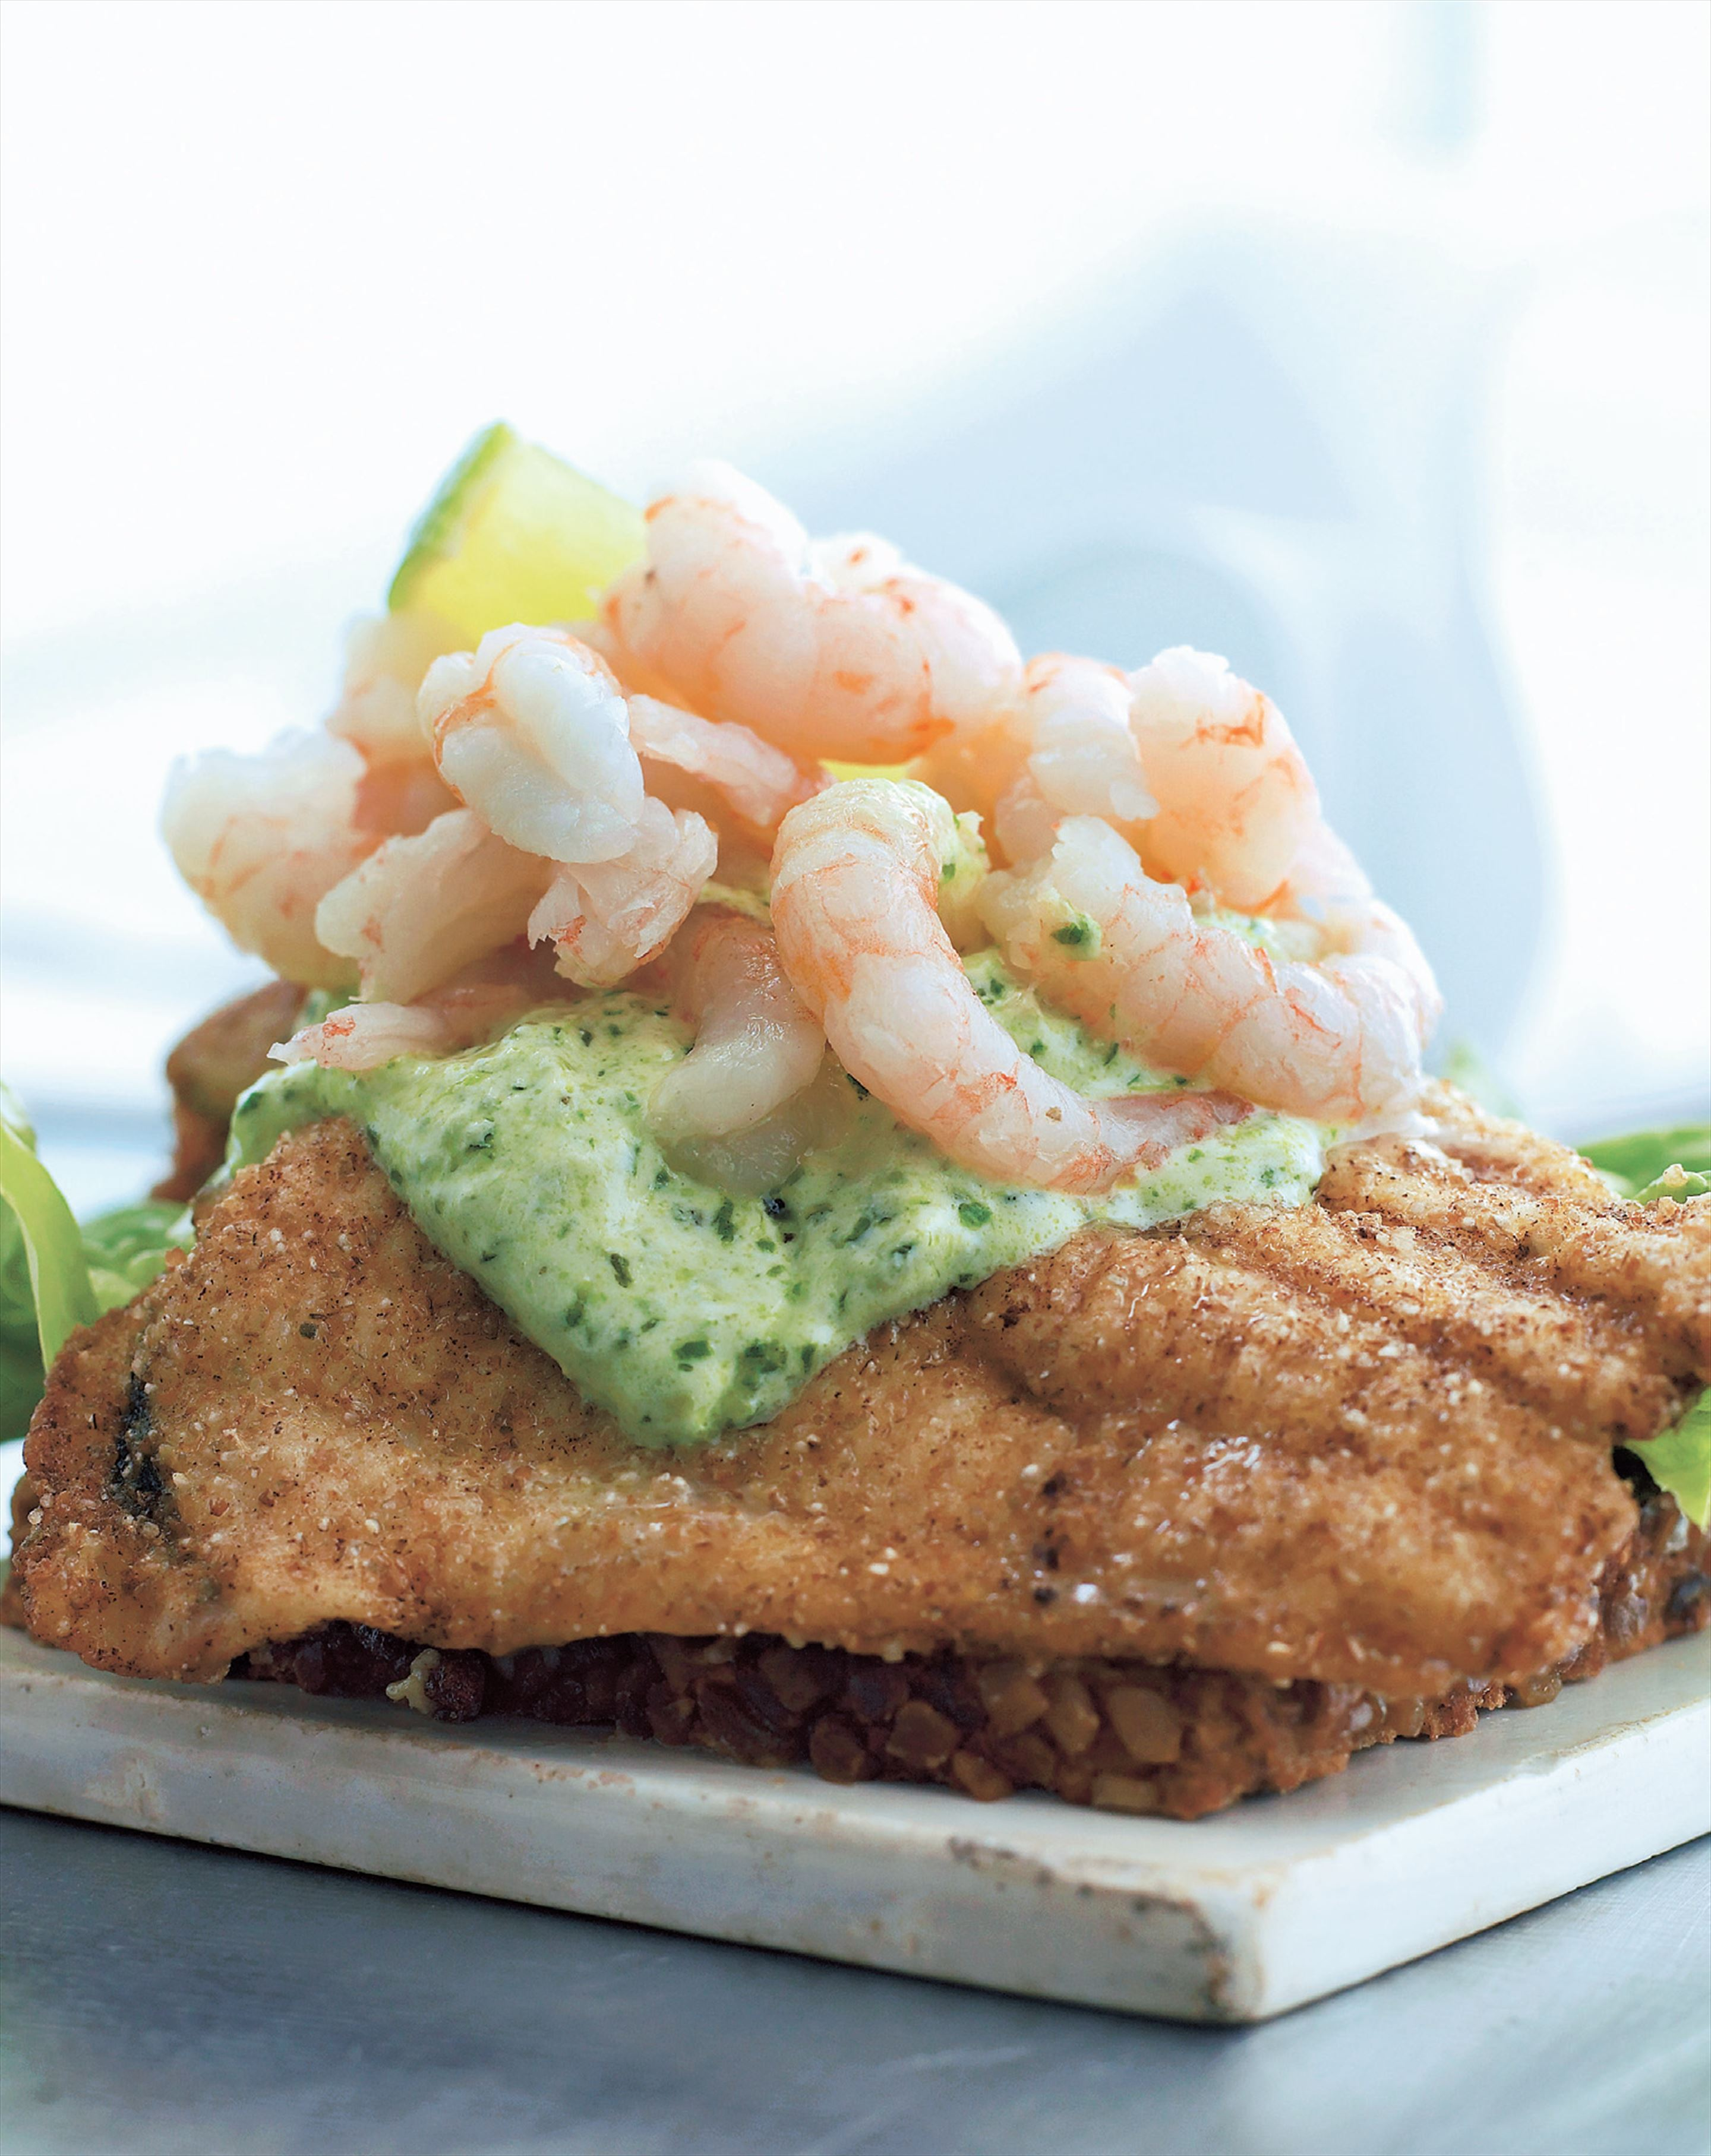 Smørrebrød: Open sandwich with plaice, prawns and basil dressing